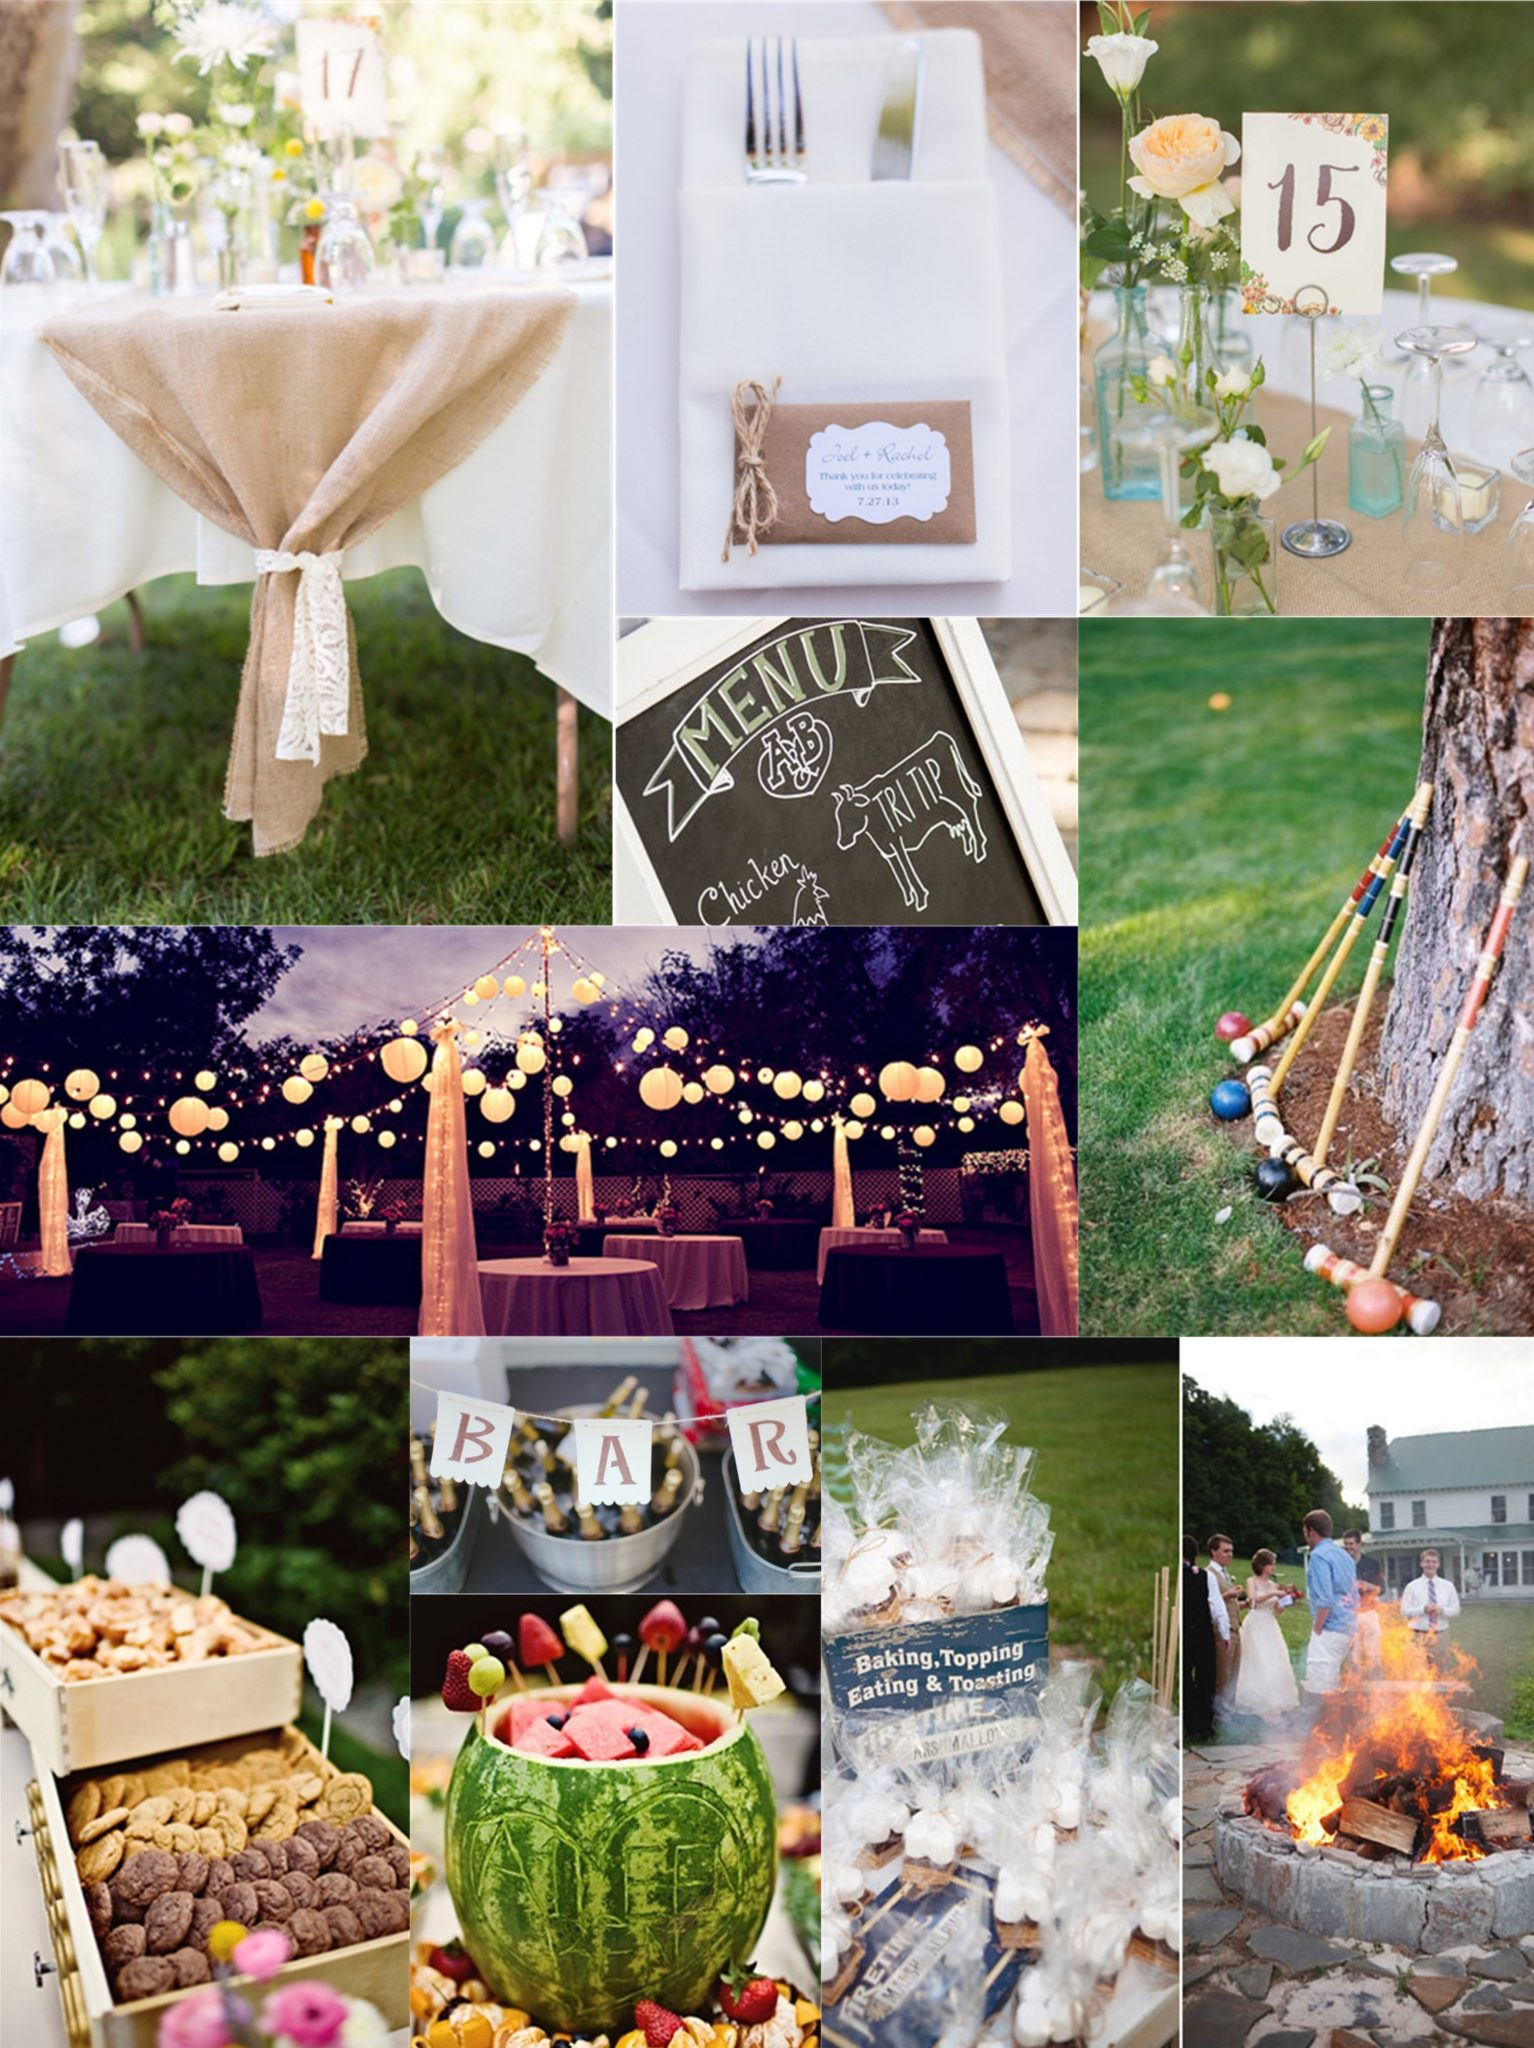 Essential Guide To A Backyard Wedding On A Budget - Cheap backyard wedding ideas